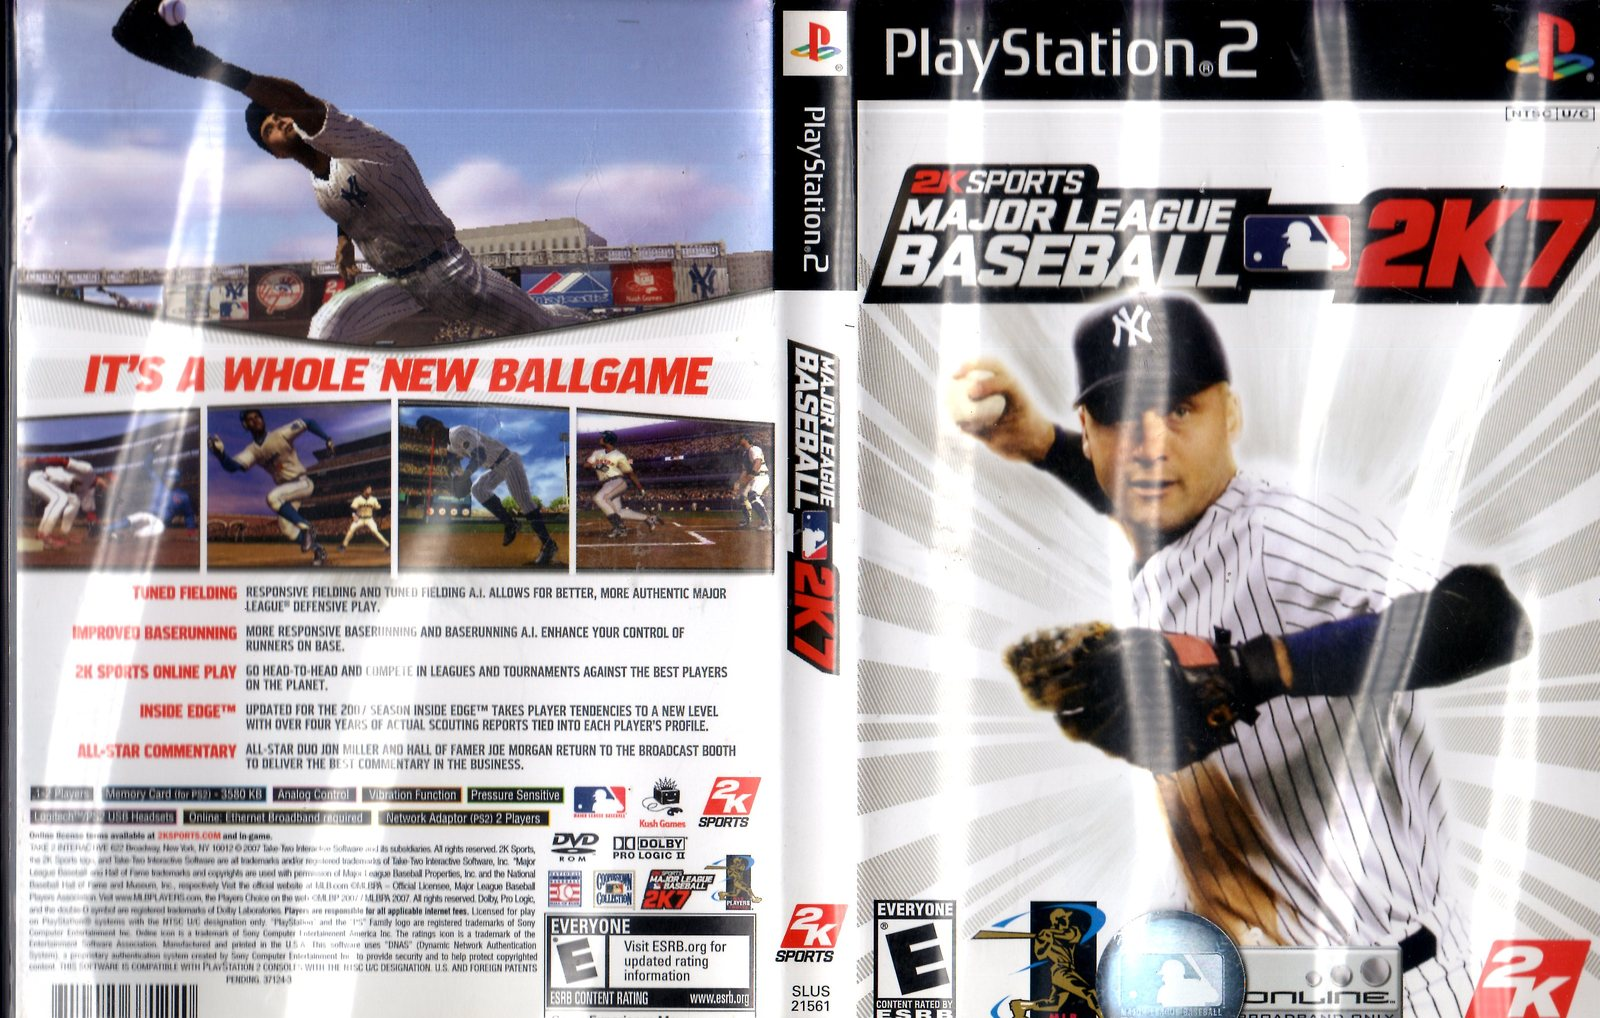 PlayStation 2 - Major League Baseball 2K7